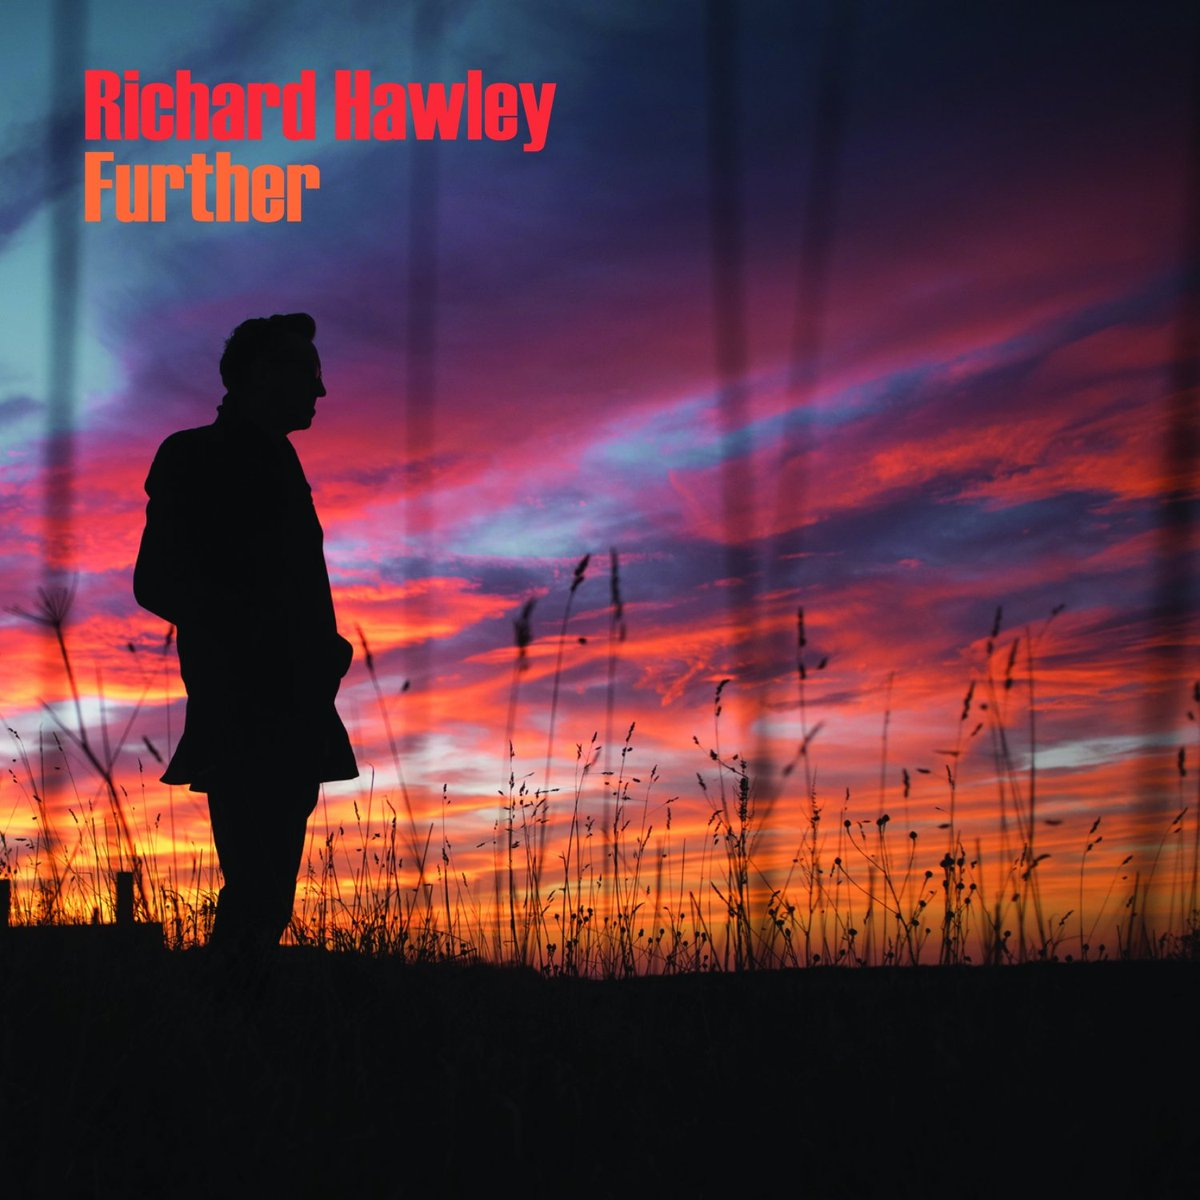 On air now @RichardHawley  talking to @GrantStottOnAir  about writing songs for his stunning album Further, while on early morning walks with his dogs. https://www.bbc.co.uk/sounds/play/live:bbc_radio_scotland_fm…